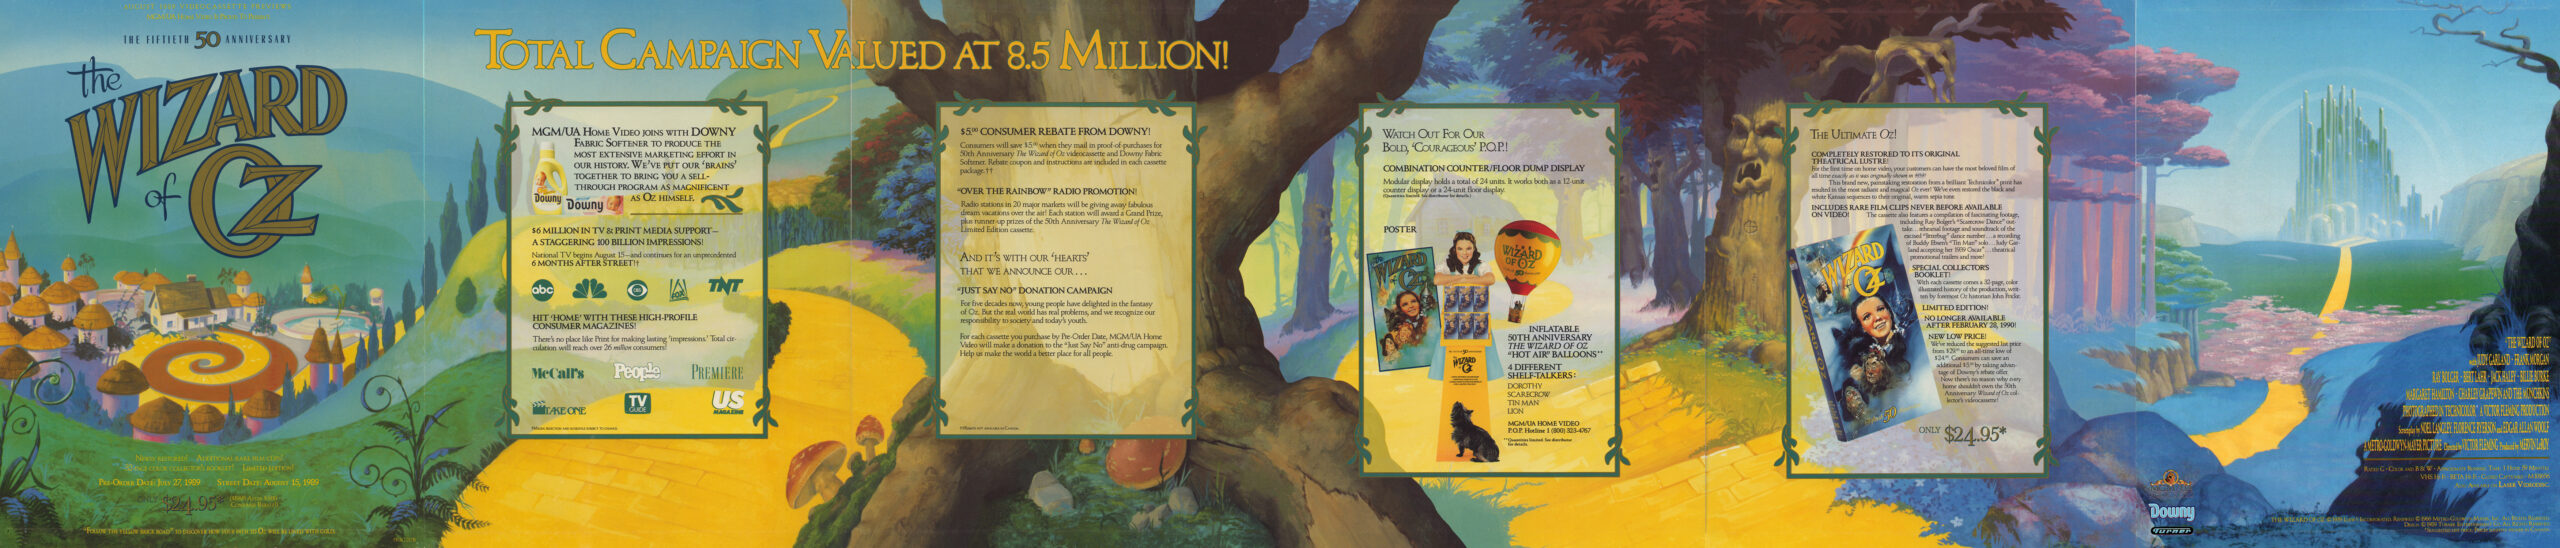 """1989 """"The Wizard of Oz"""" banner artwork"""